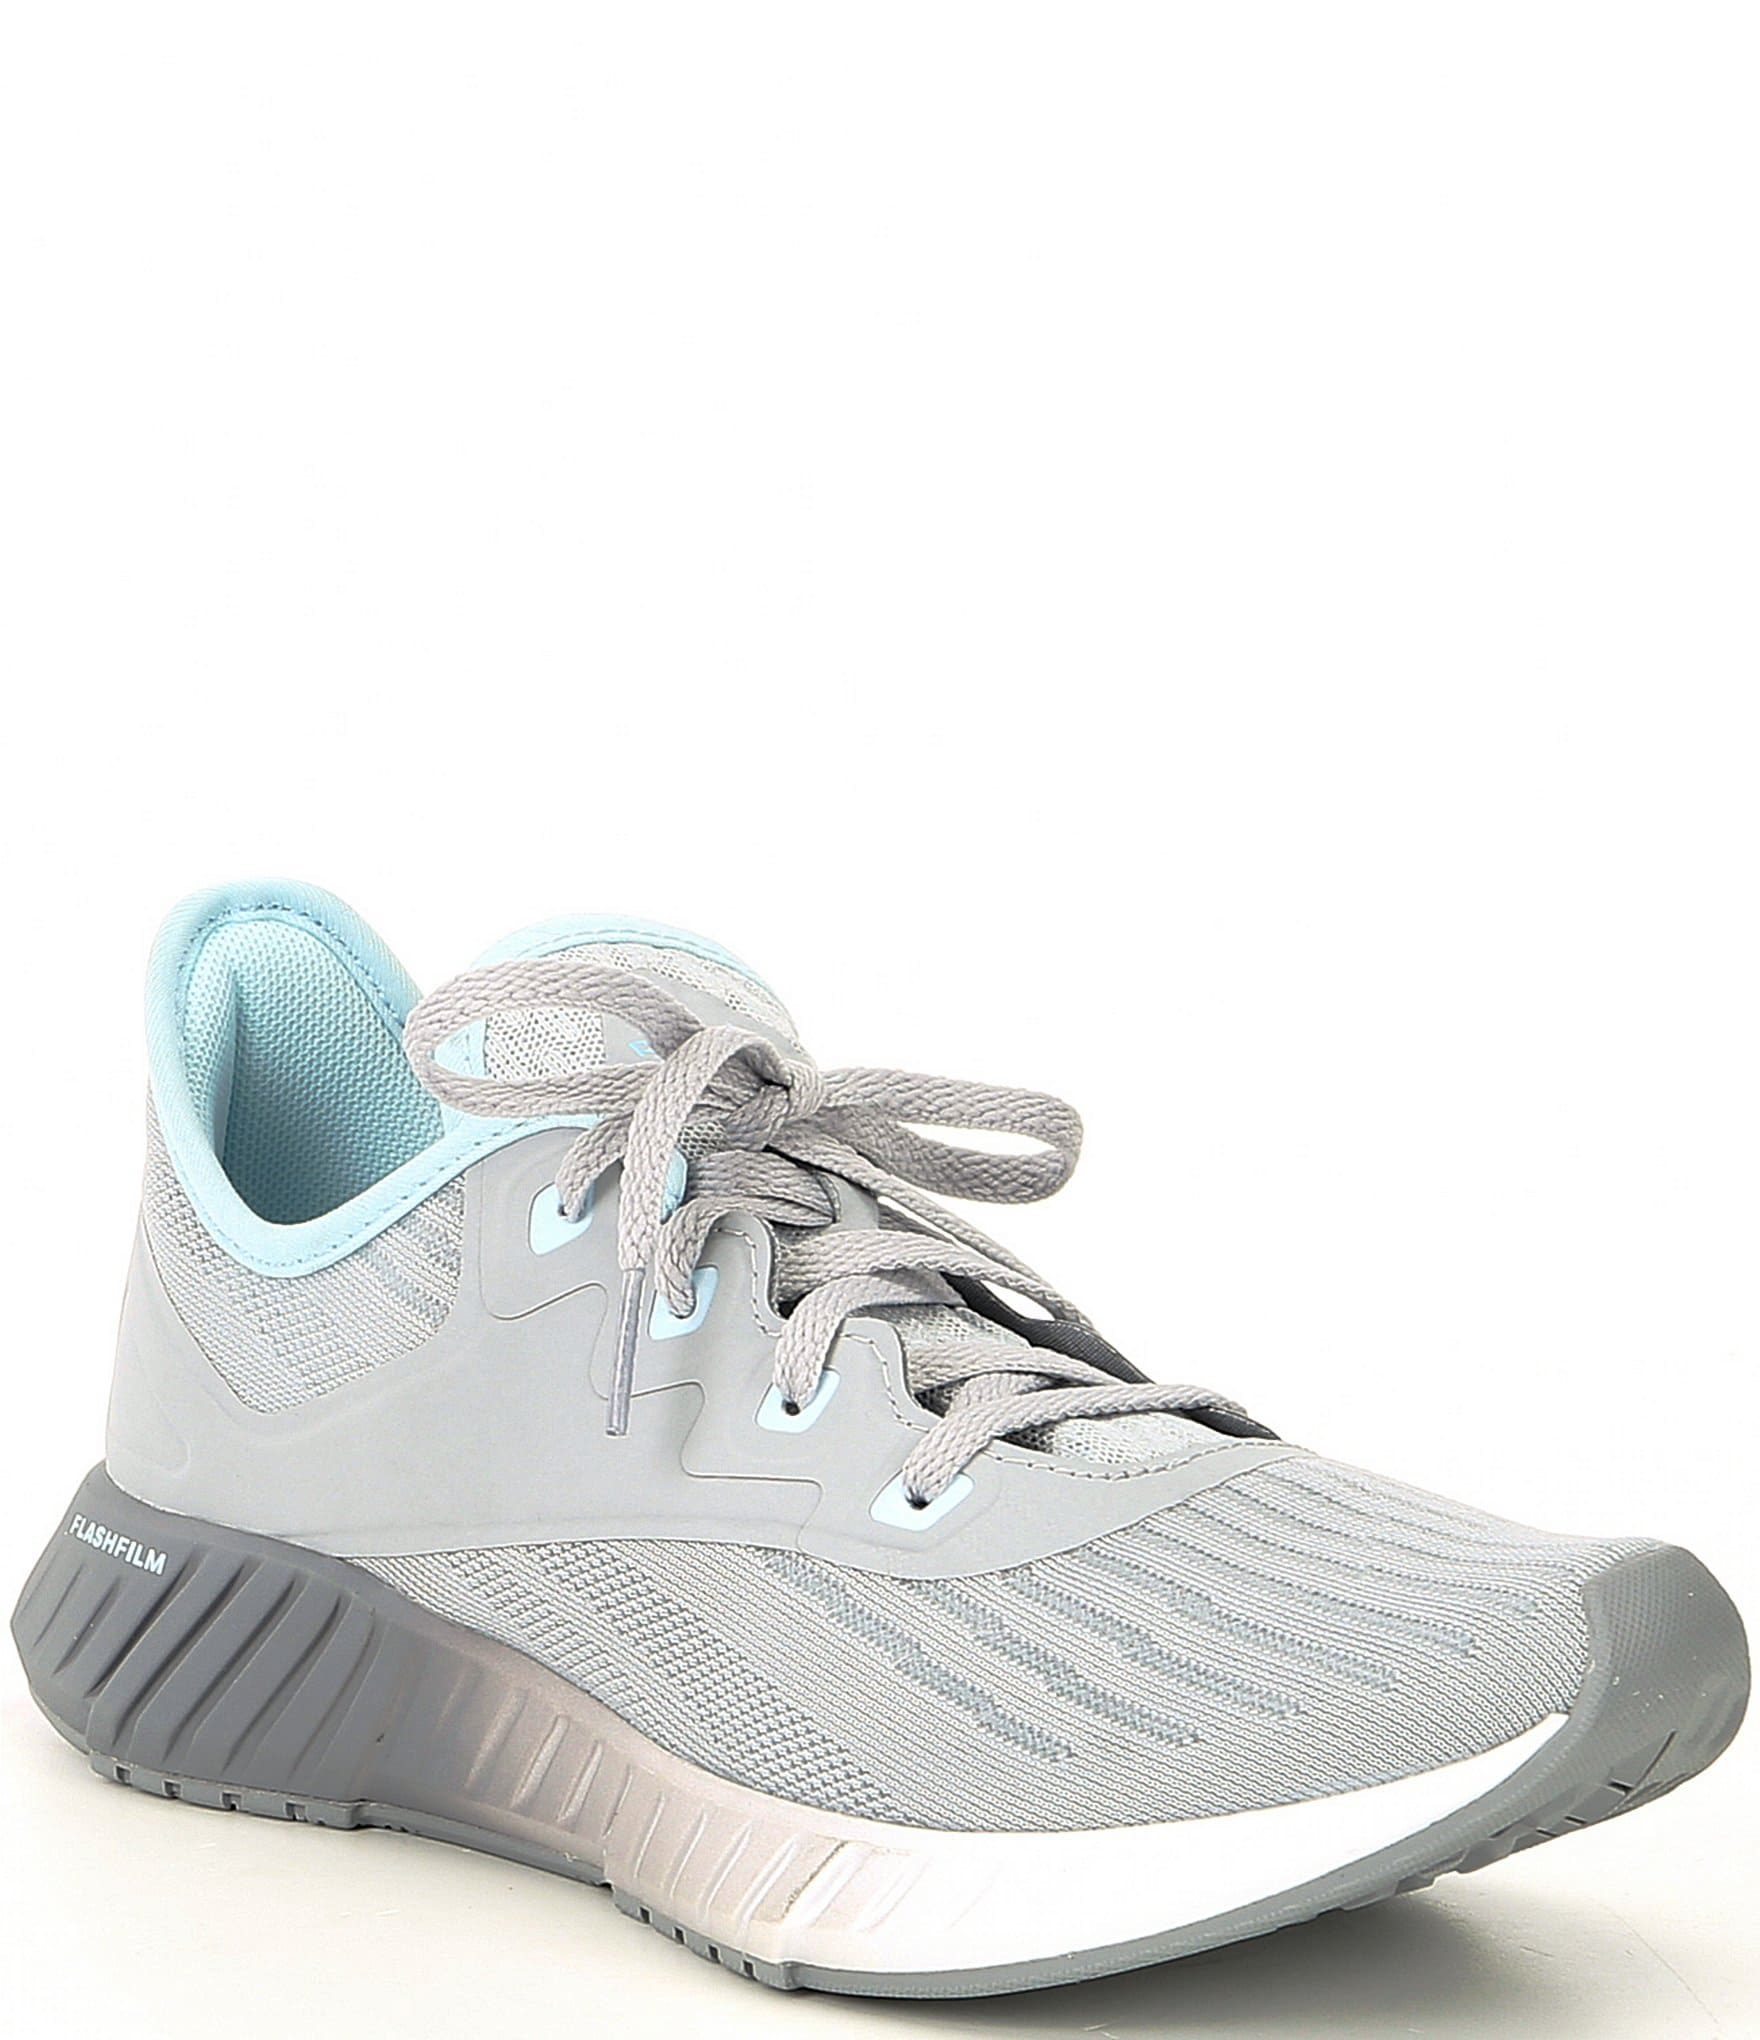 sports shoes for womens reebok